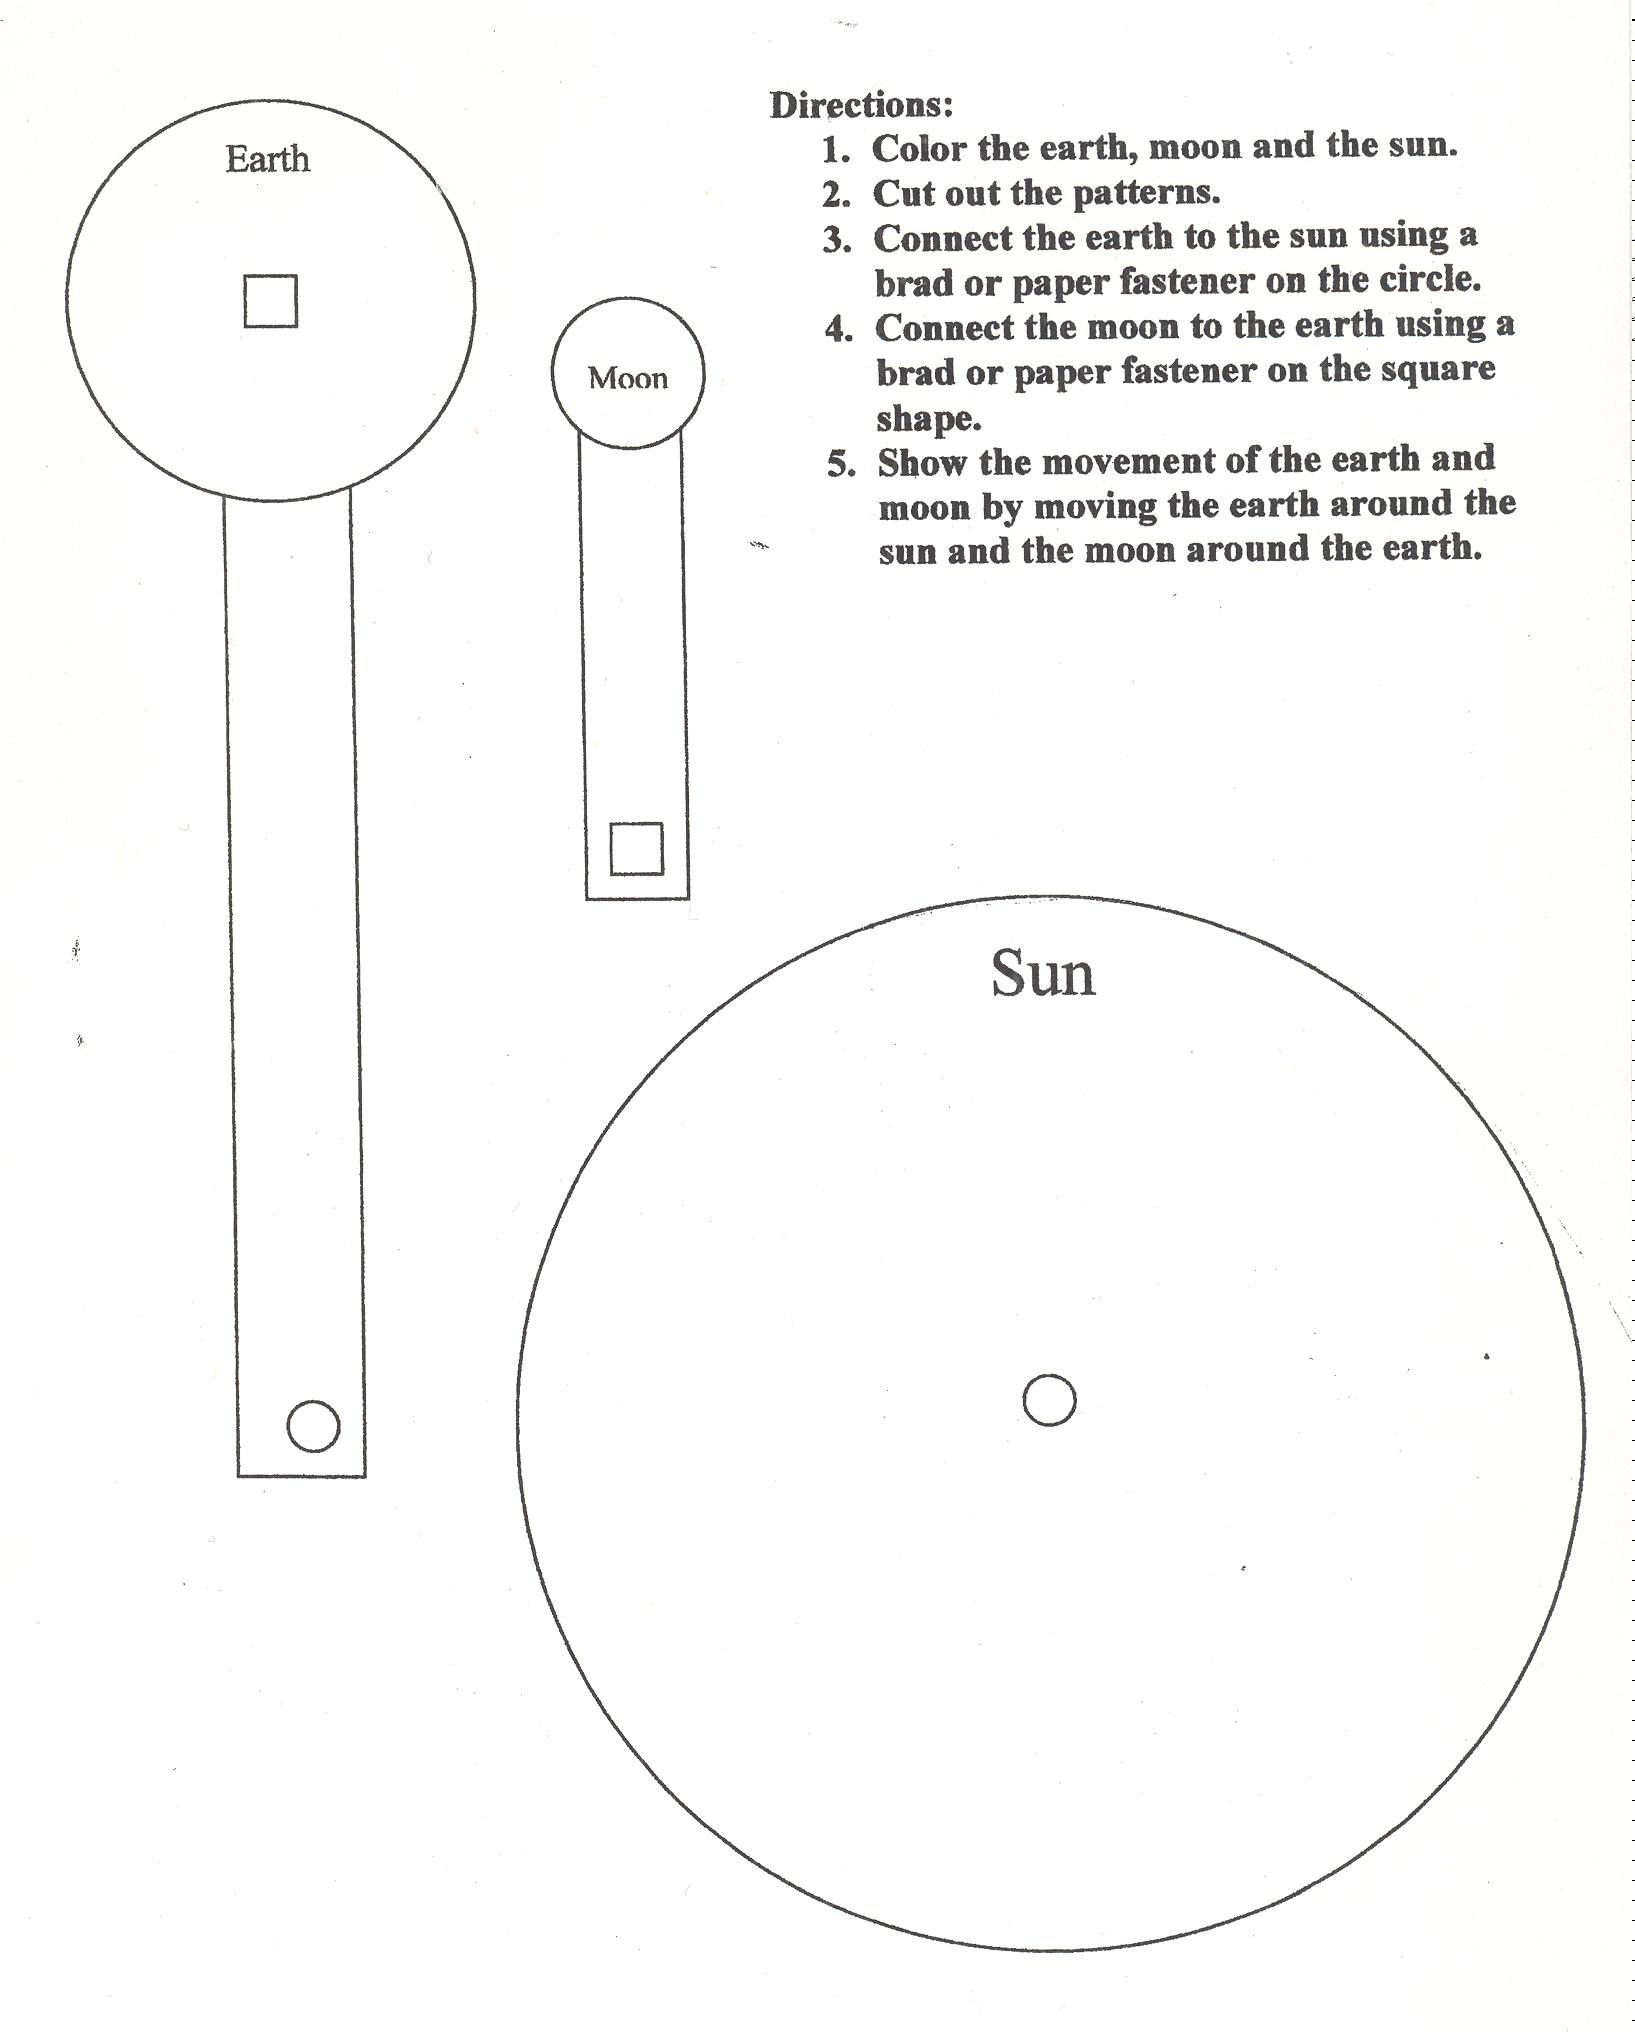 Planetary and Solar System STEAM Activities – F.E.S.T